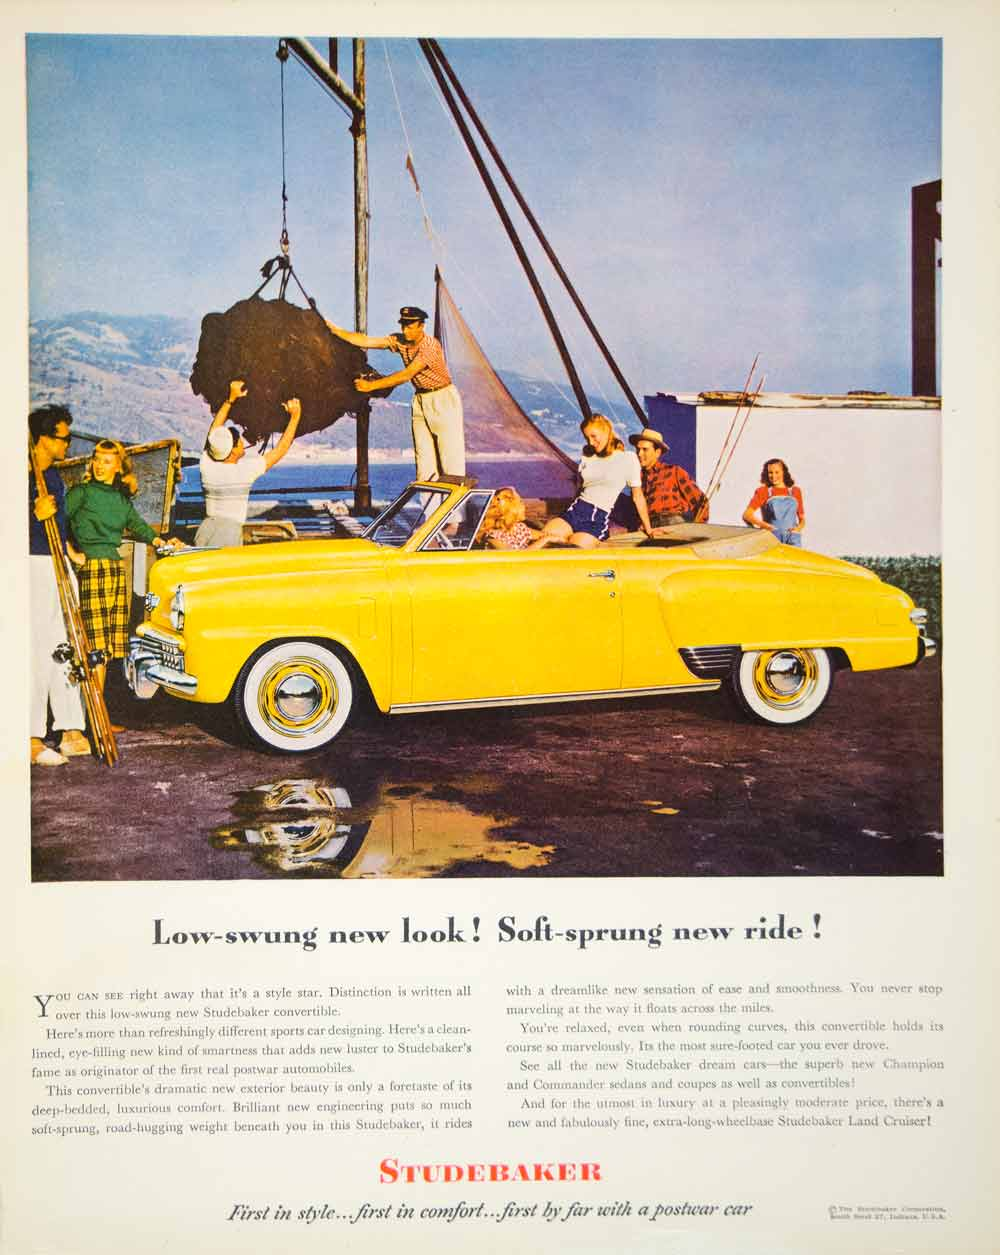 1948 Ad Studebaker Convertible Automobile Yellow Car Whitewall Tires FTM3